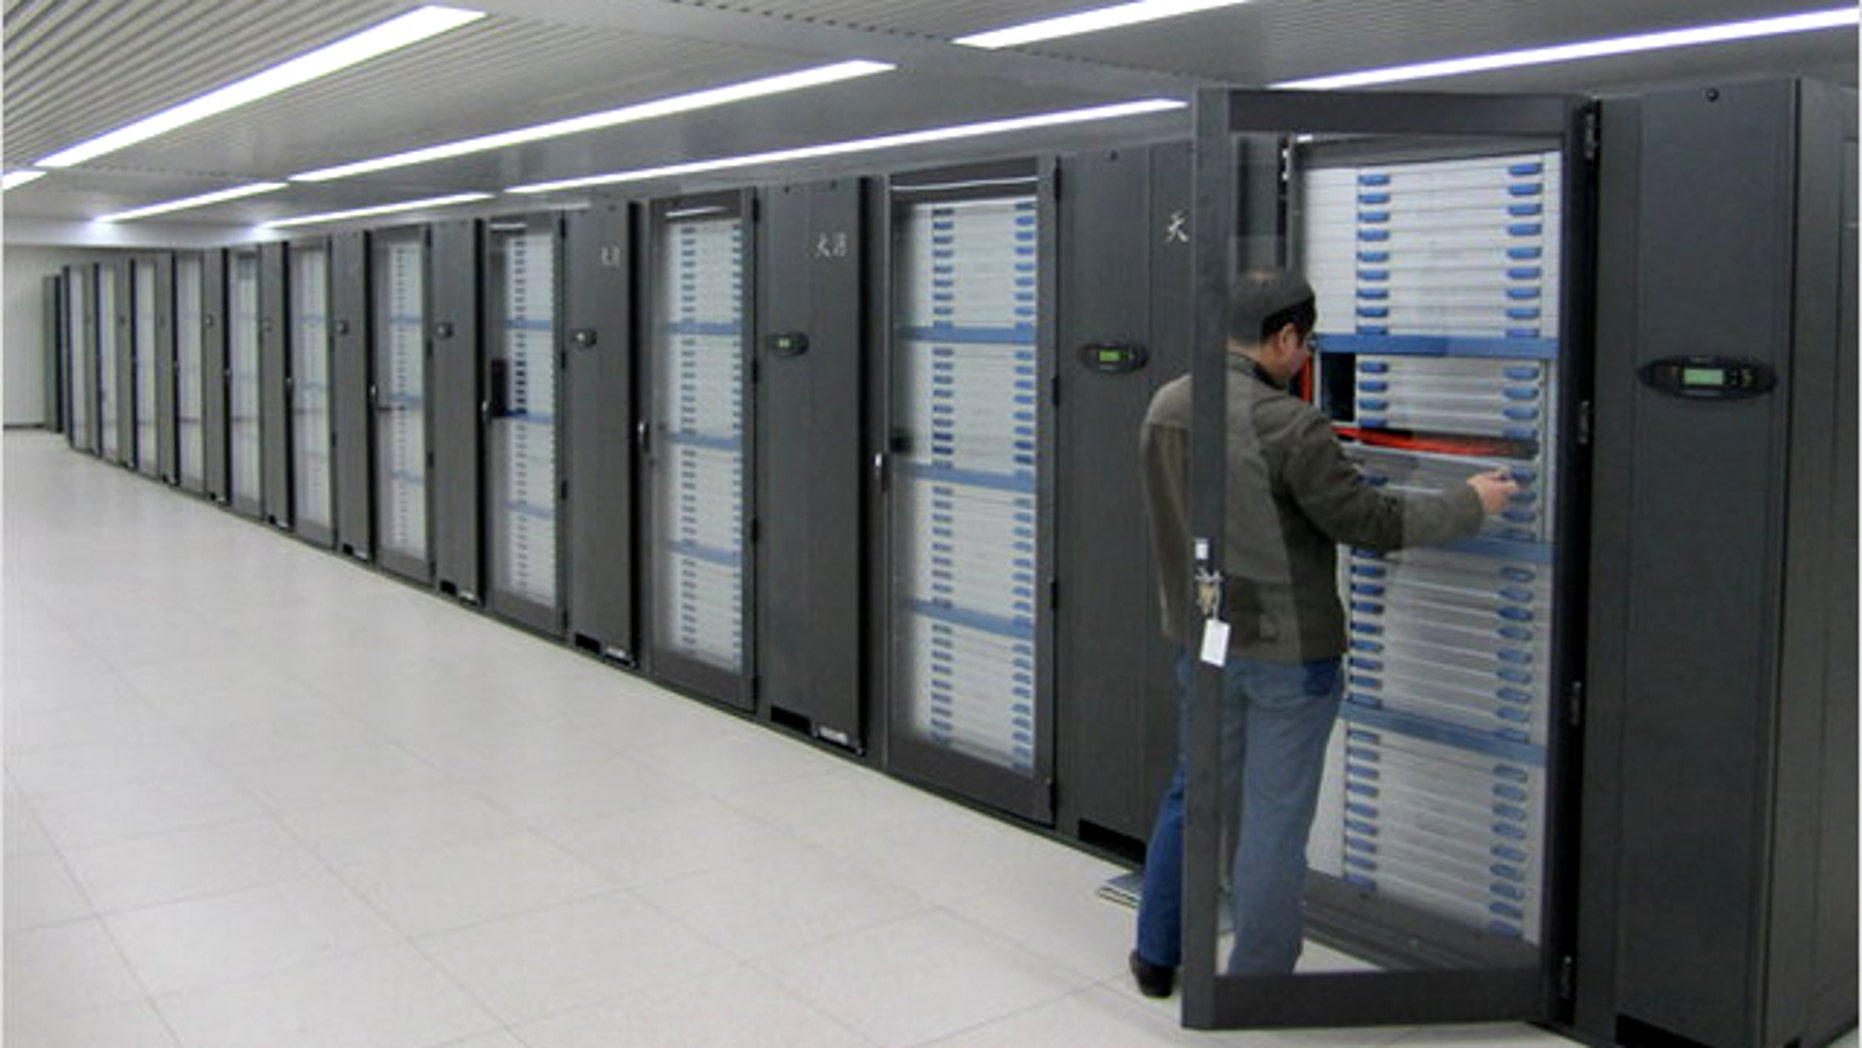 Big blue supercomputer